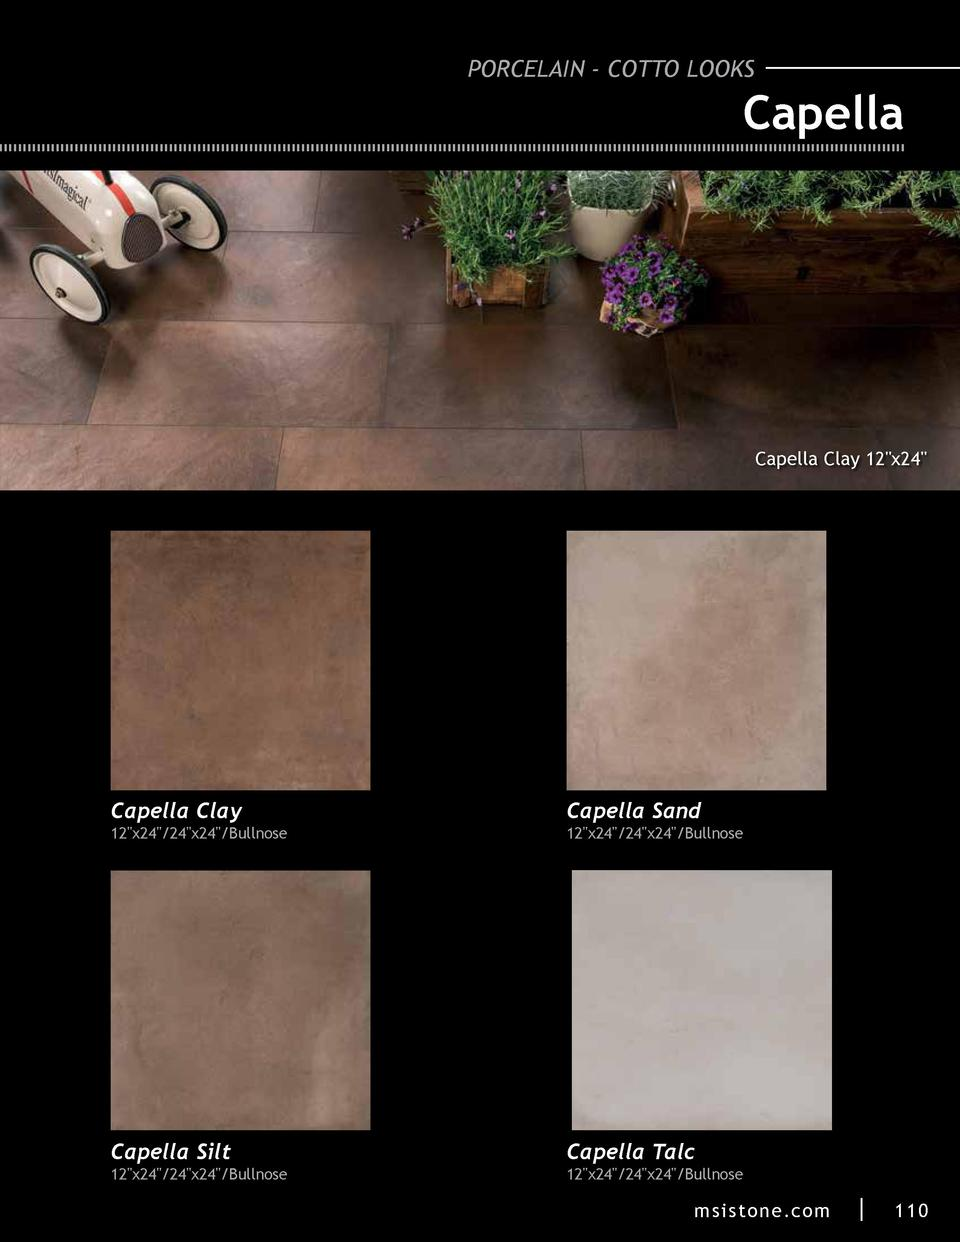 PORCELAIN - COTTO LOOKS  Capella  Capella Clay 12 x24   Capella Clay  Capella Sand  Capella Silt  Capella Talc  12 x24  24...